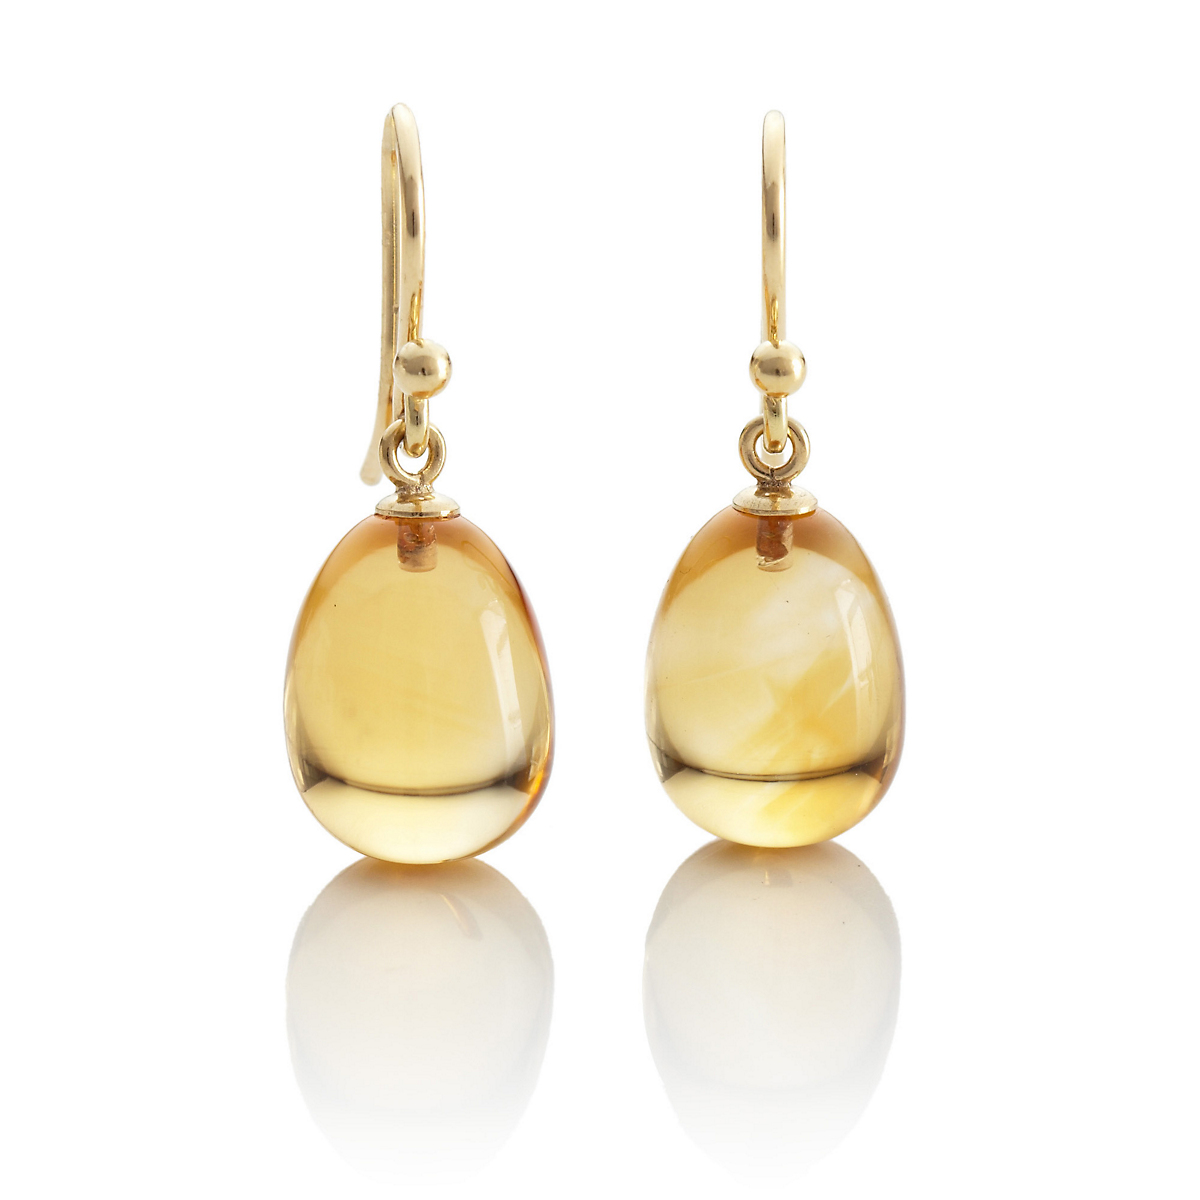 Gump's Citrine Drop Earrings